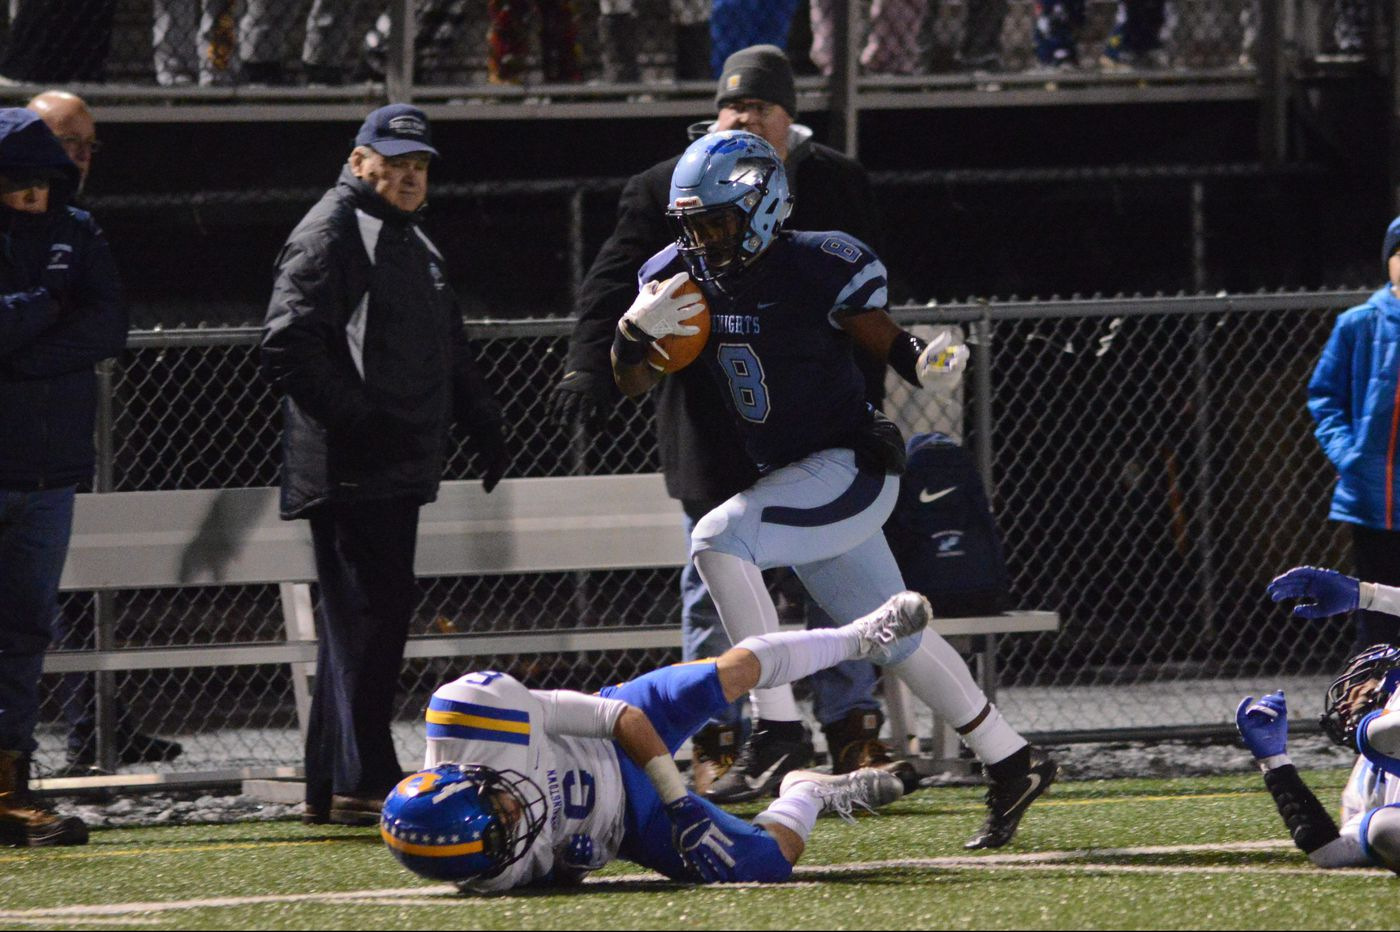 Shamar Edwards, North Penn run past Downingtown West in District 1 Class 6A football semifinal